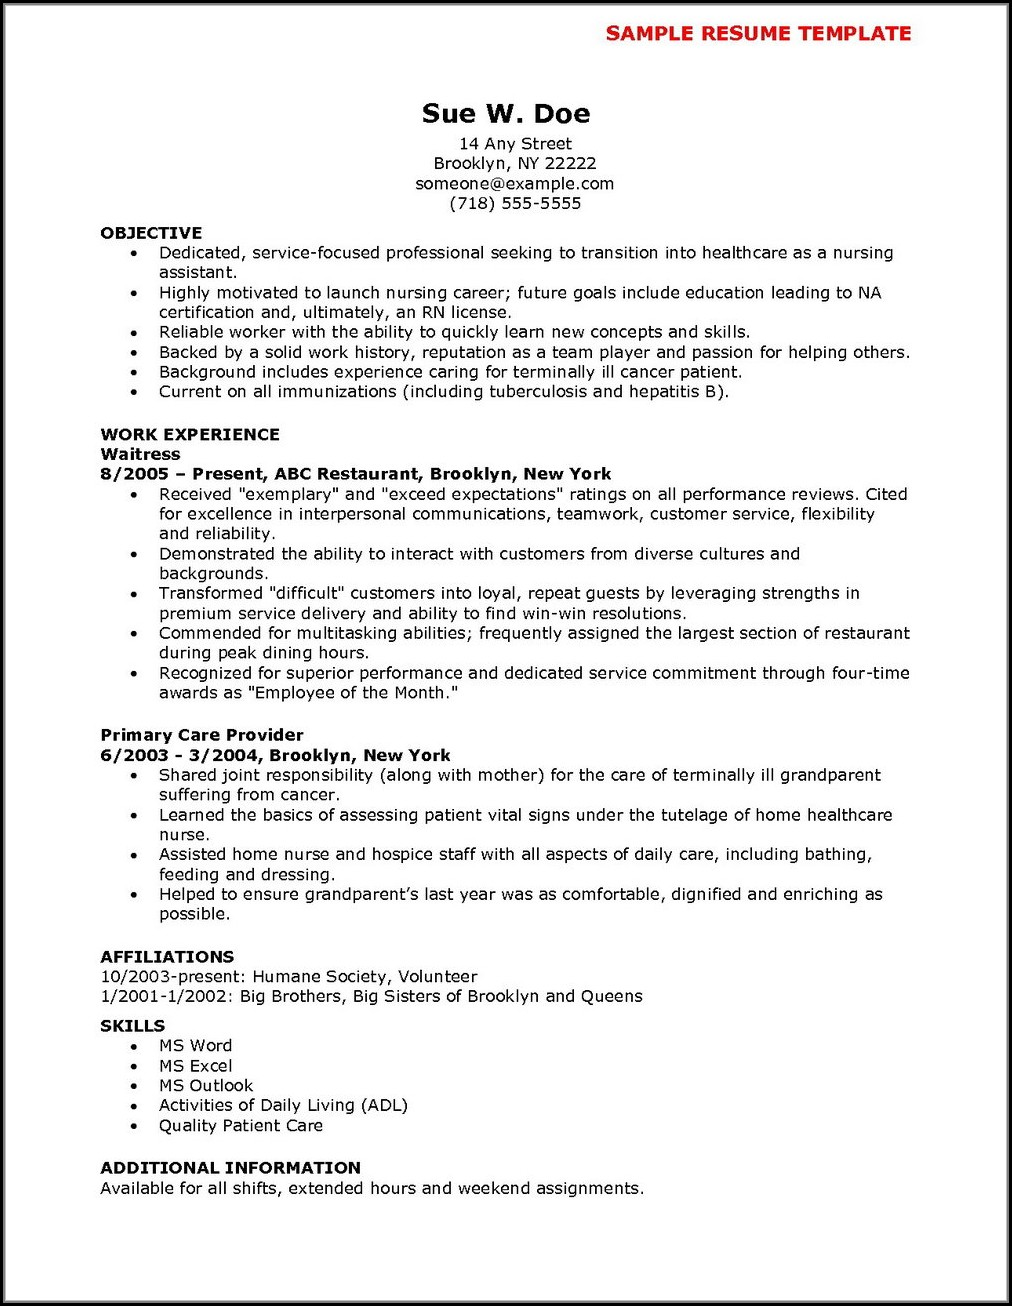 Sample Resume For Experienced Nursing Assistant